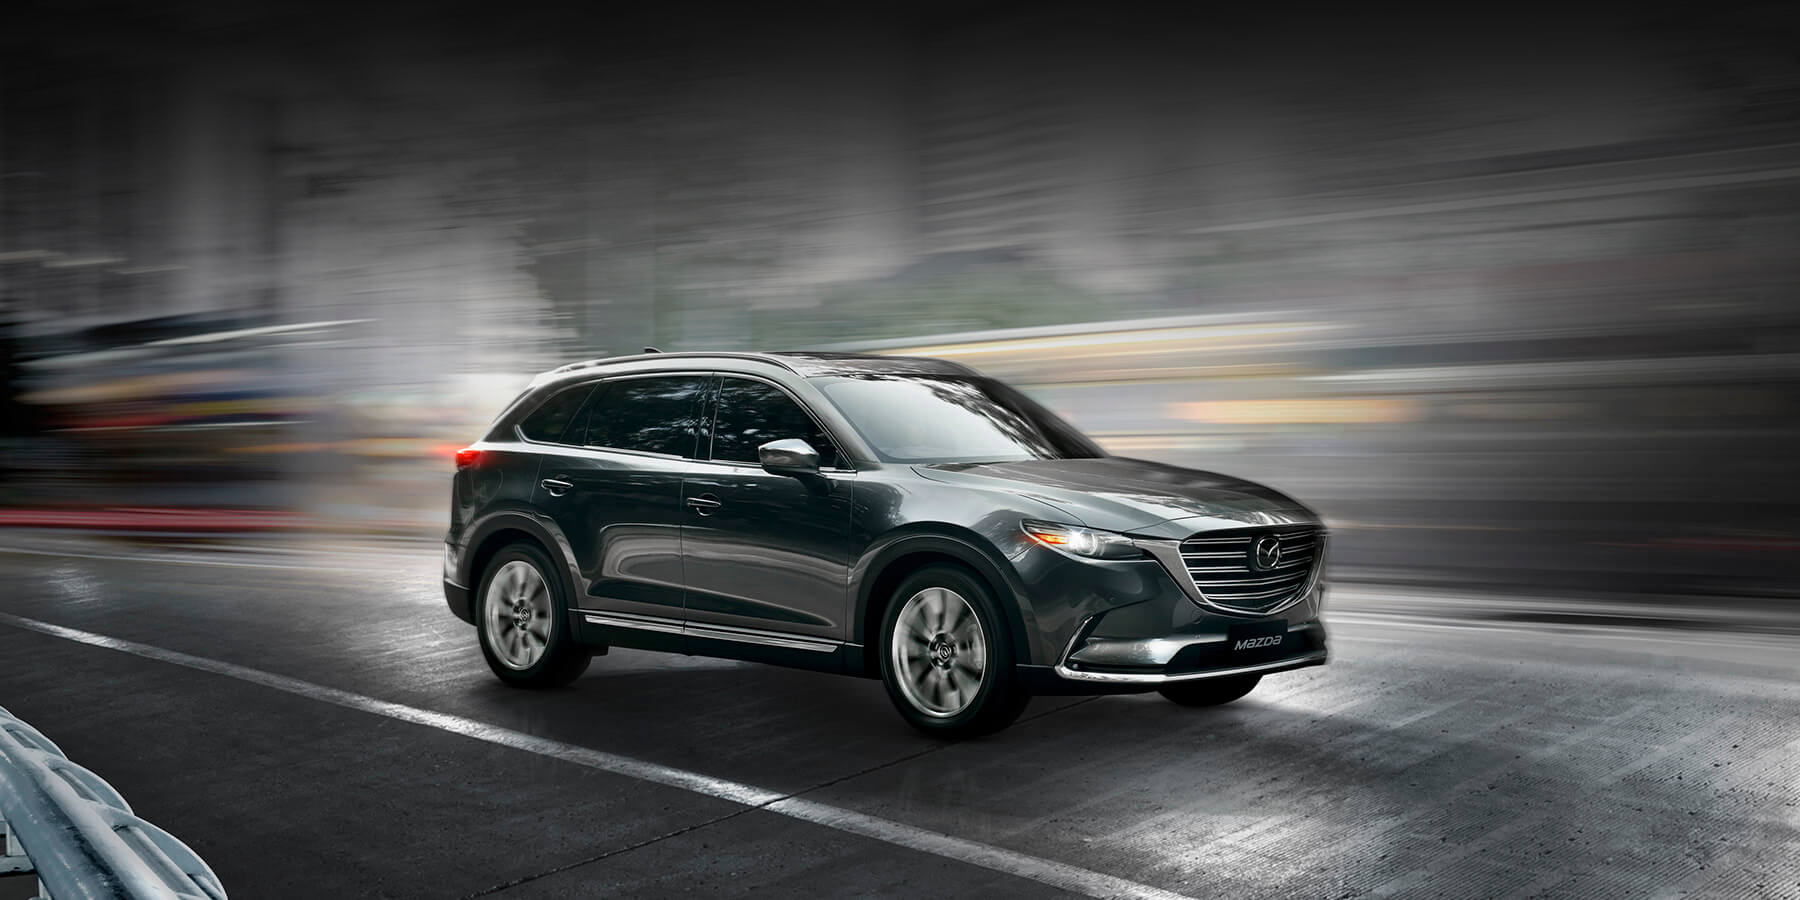 New Mazda CX-9 GTX AWD 2.5L T CA 6AT (CN)